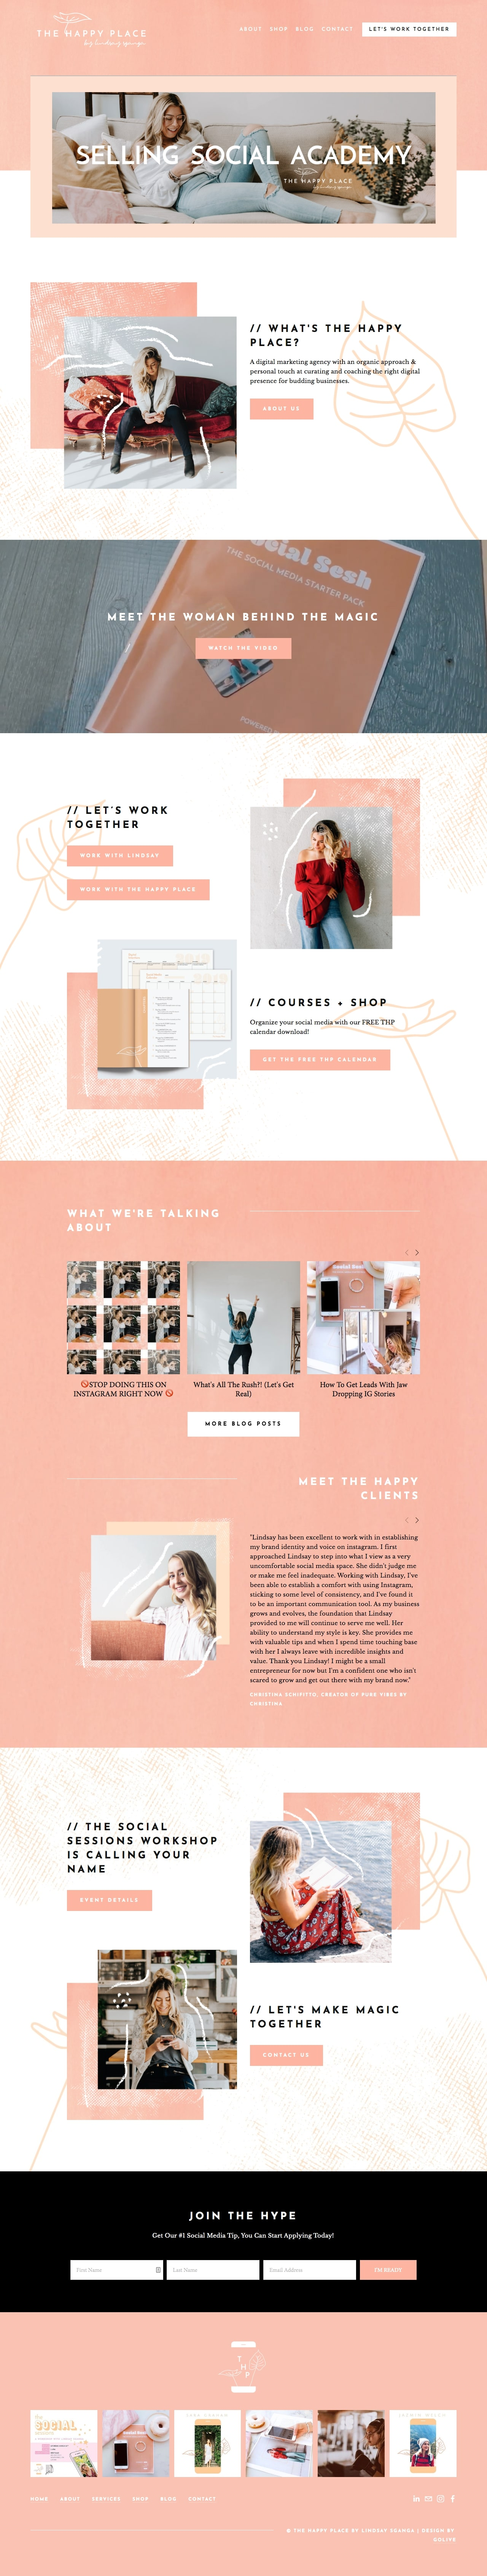 the-happy-place-best-example-of-squarespace-website-for-marketing-businesses (1).jpg